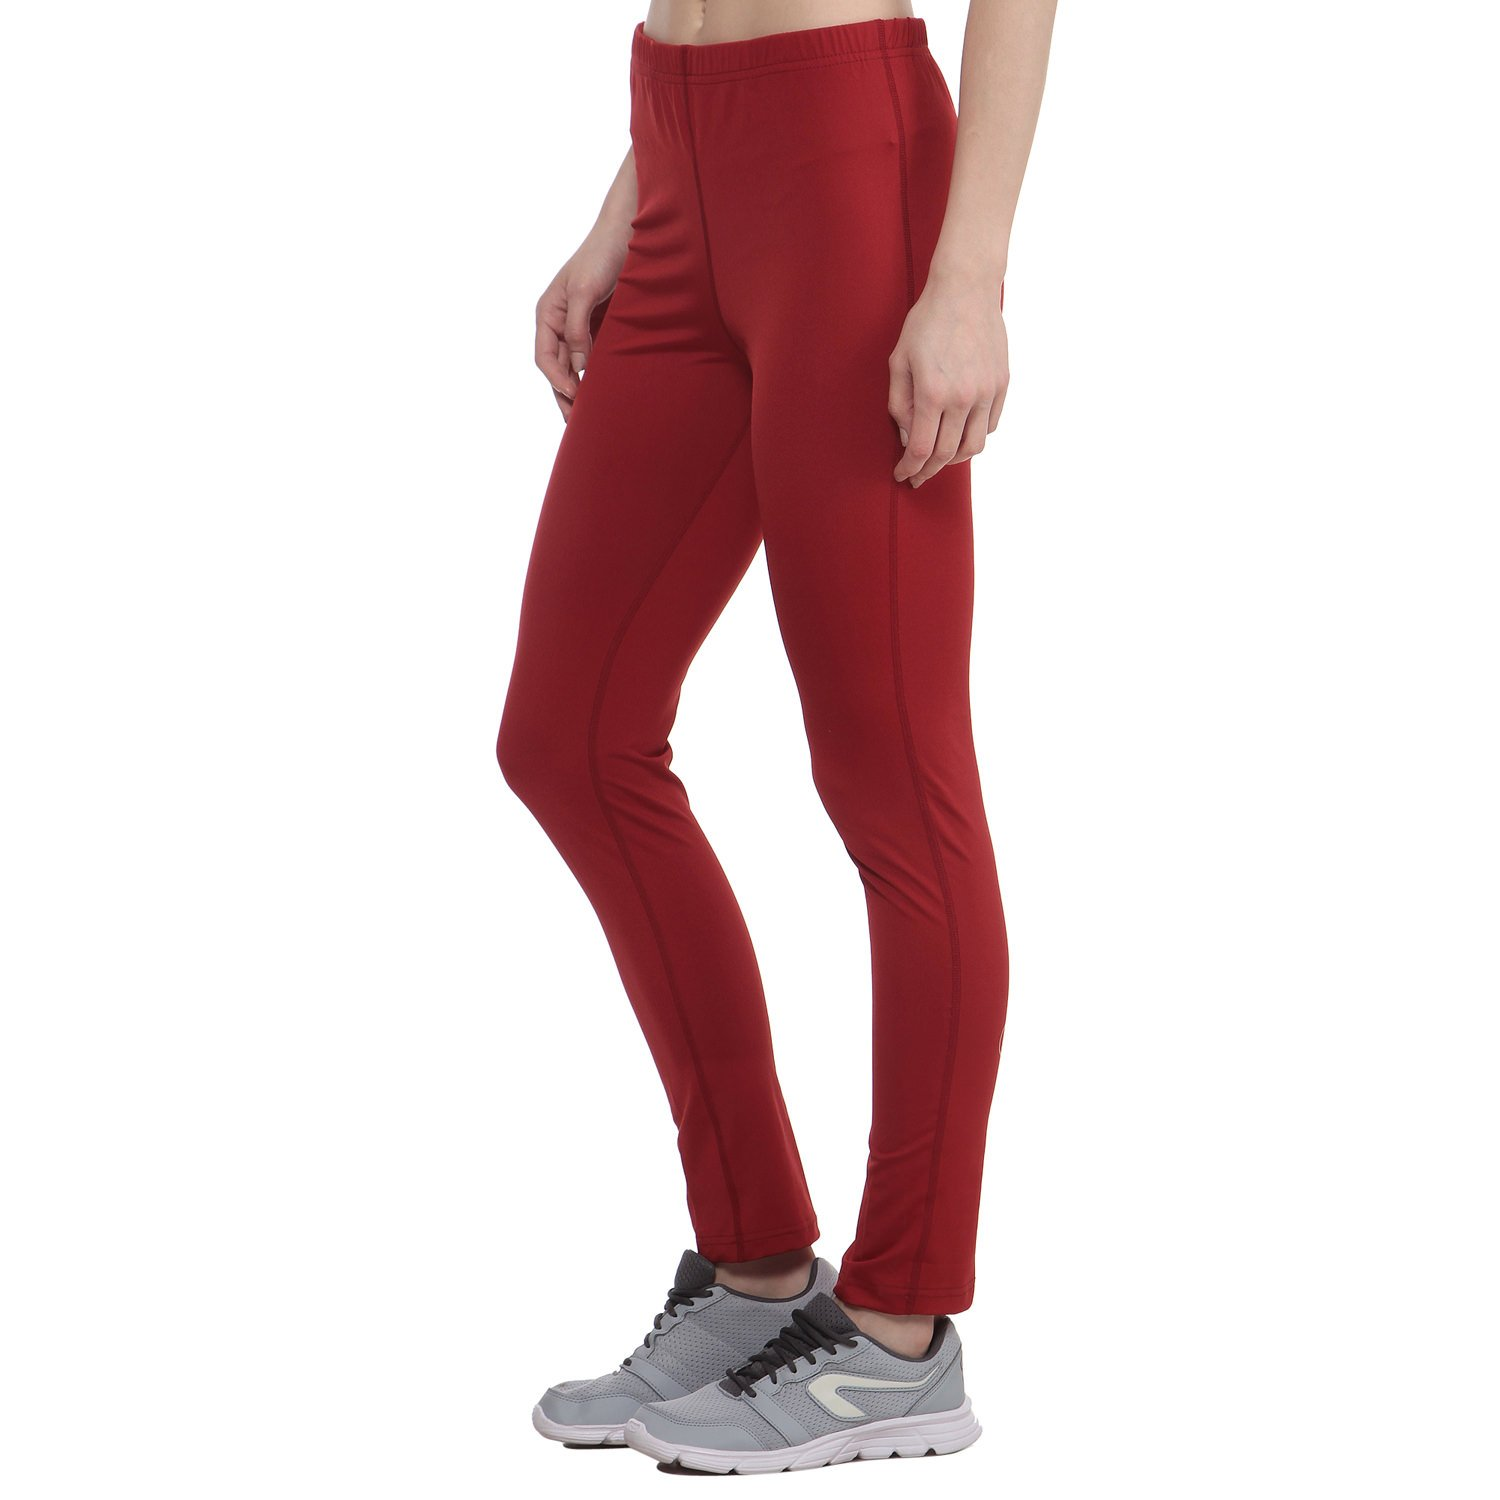 cd55a0458b CHKOKKO Women's Solid Yoga Sports Stretchable High Waist Track Yoga Pant:  Amazon.in: Clothing & Accessories